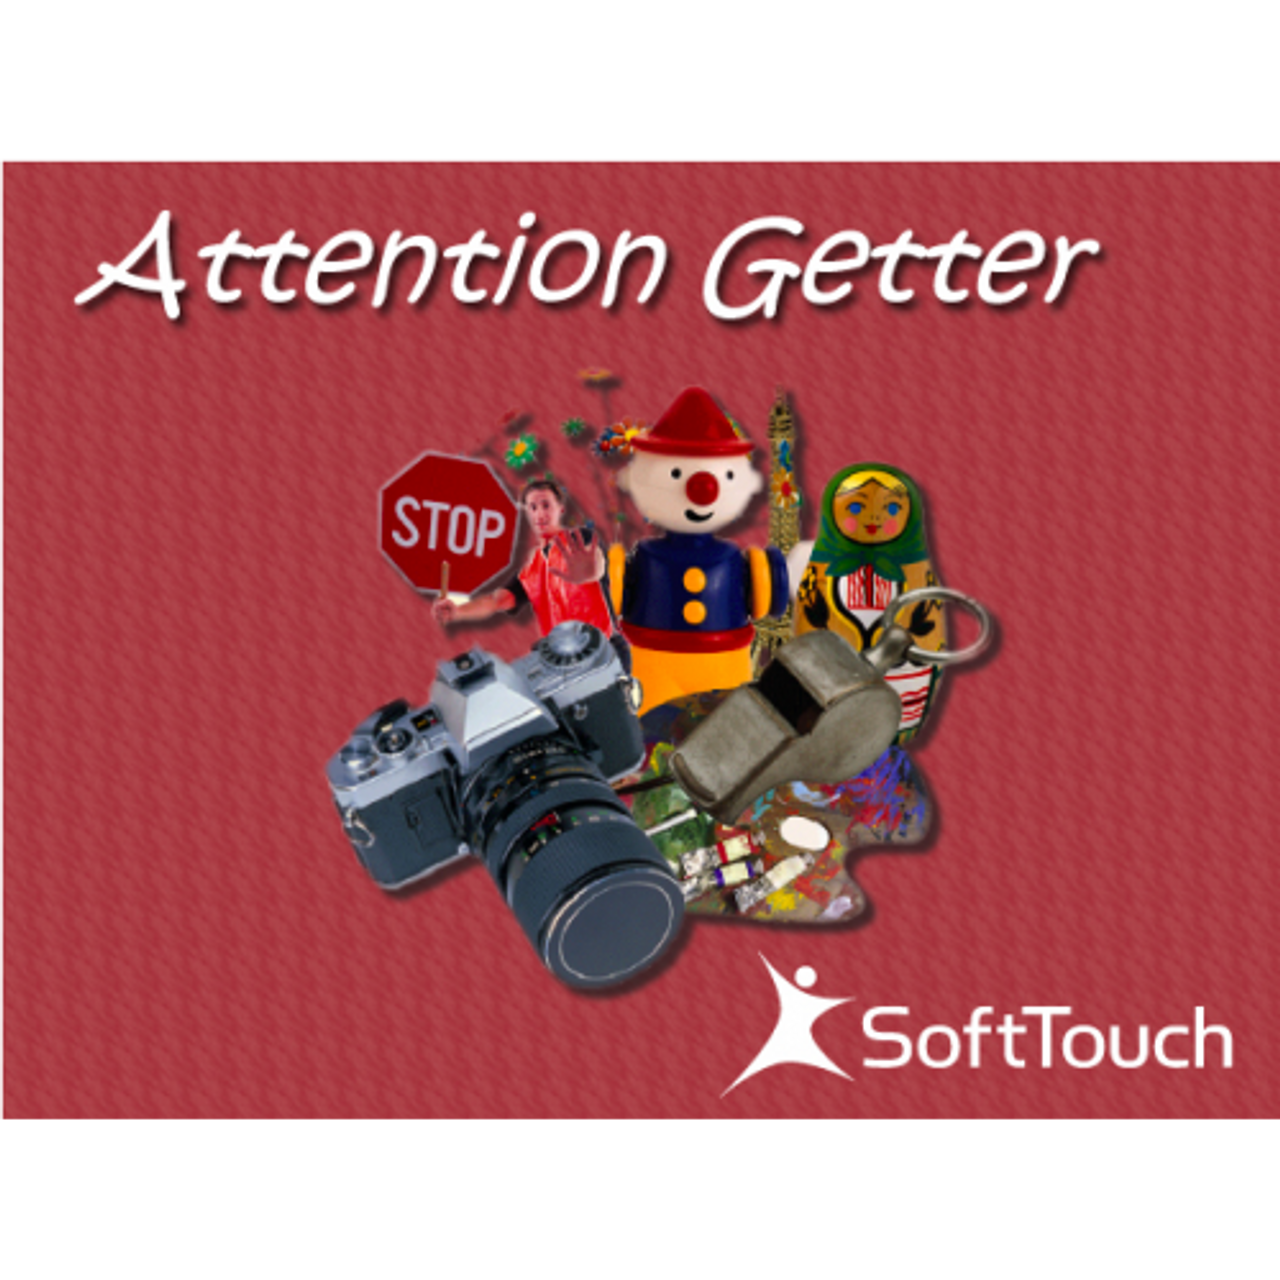 Attention Getter